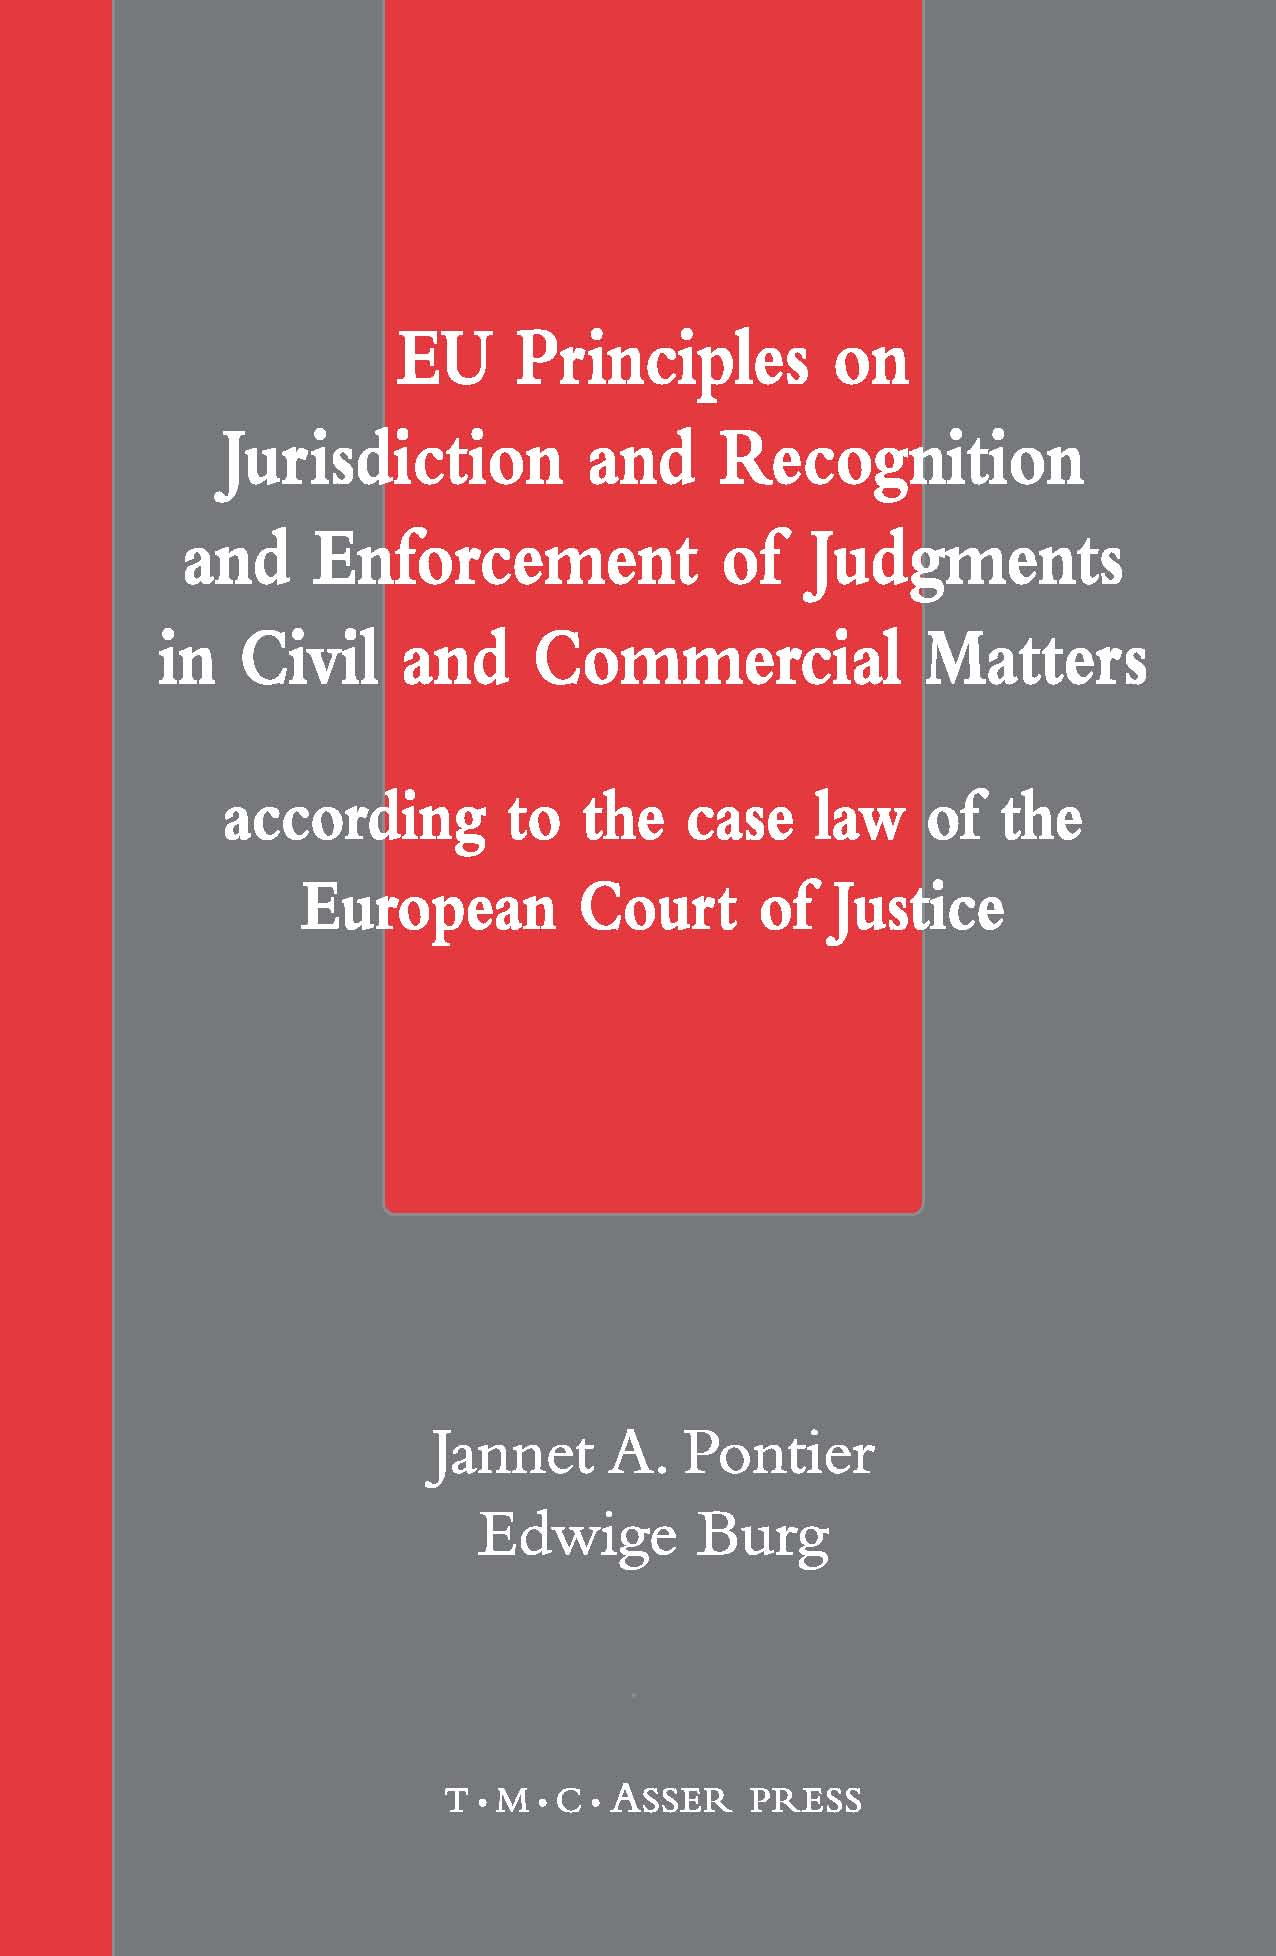 EU Principles on Jurisdiction and Recognition and Enforcement of Judgments in Civil and Commercial Matters according to the case law of the European Court of Justice